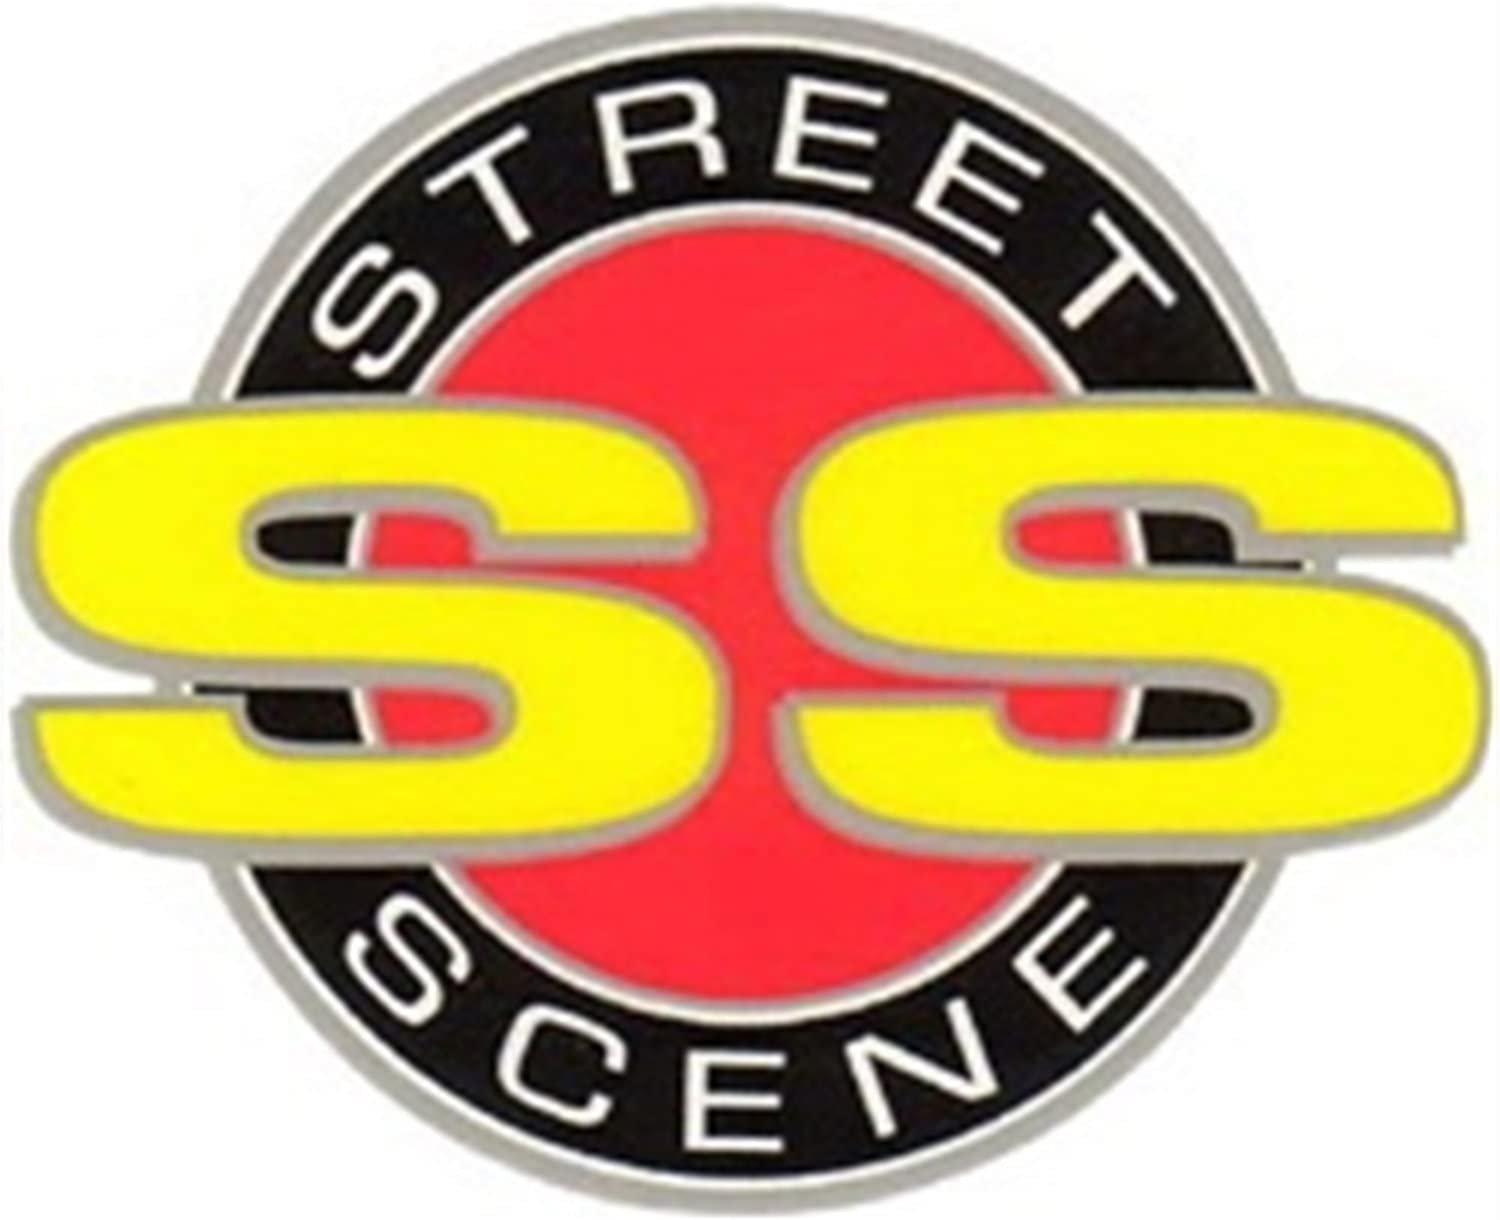 New products world's highest quality popular Credence Street Scene 950-80145 Speed Grille Insert Valance Bumper